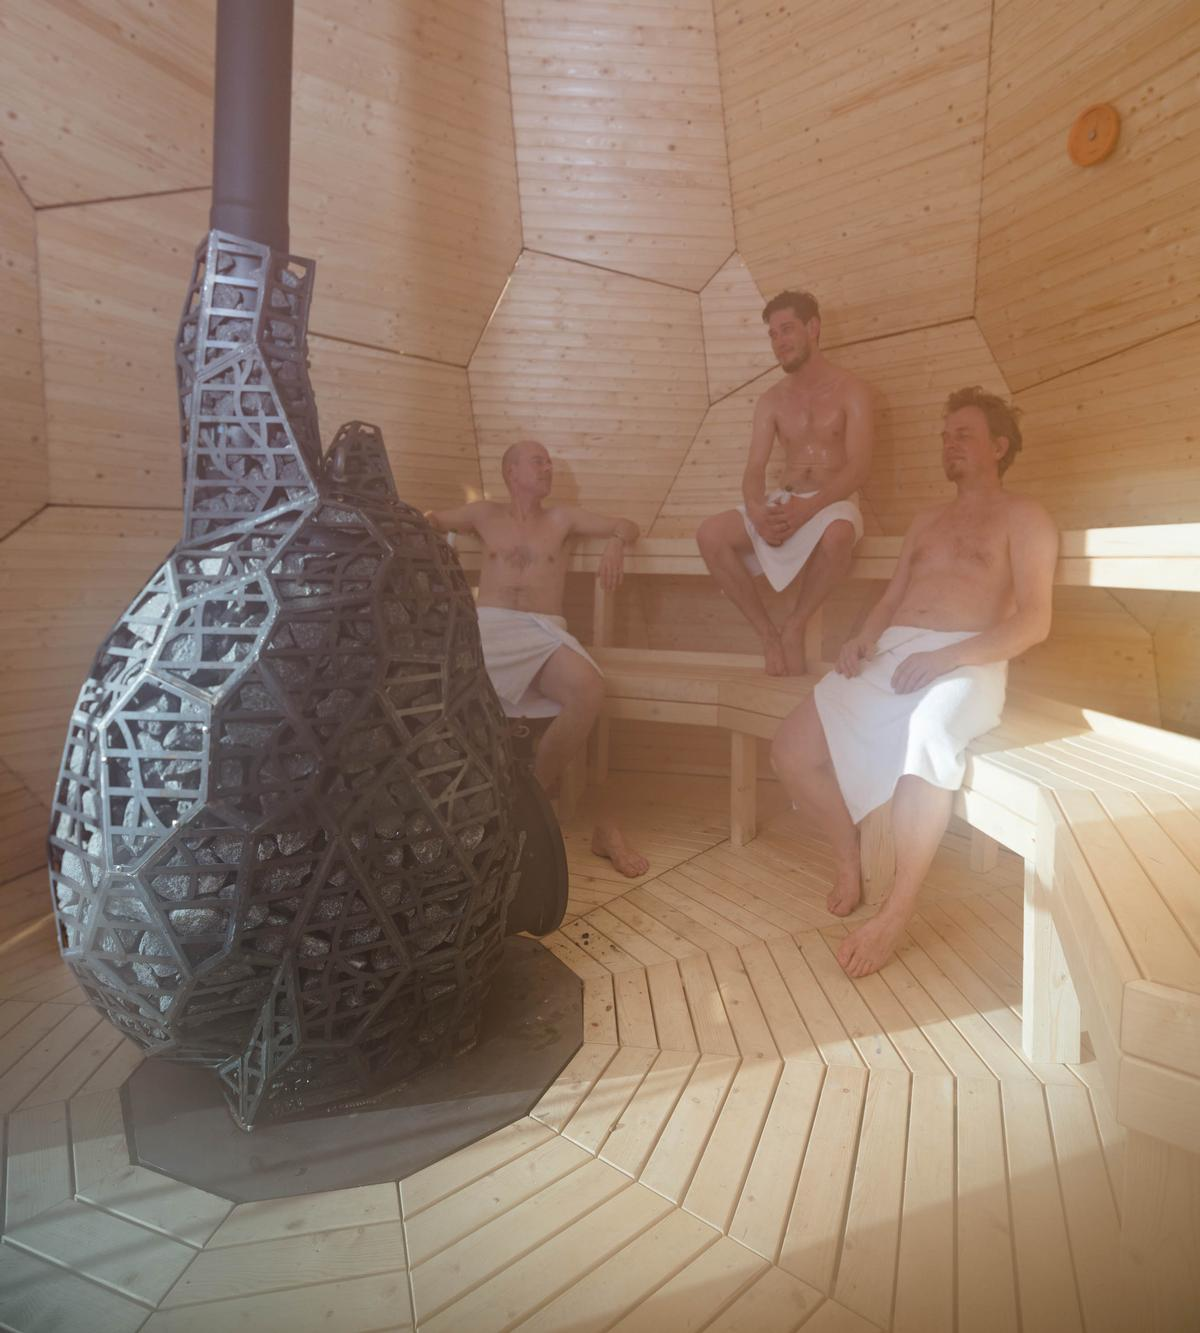 Solar Egg is conceived as a social sculpture in which the people of Kiruna can meet and discuss the challenges facing their community / Jean-Baptiste Béranger